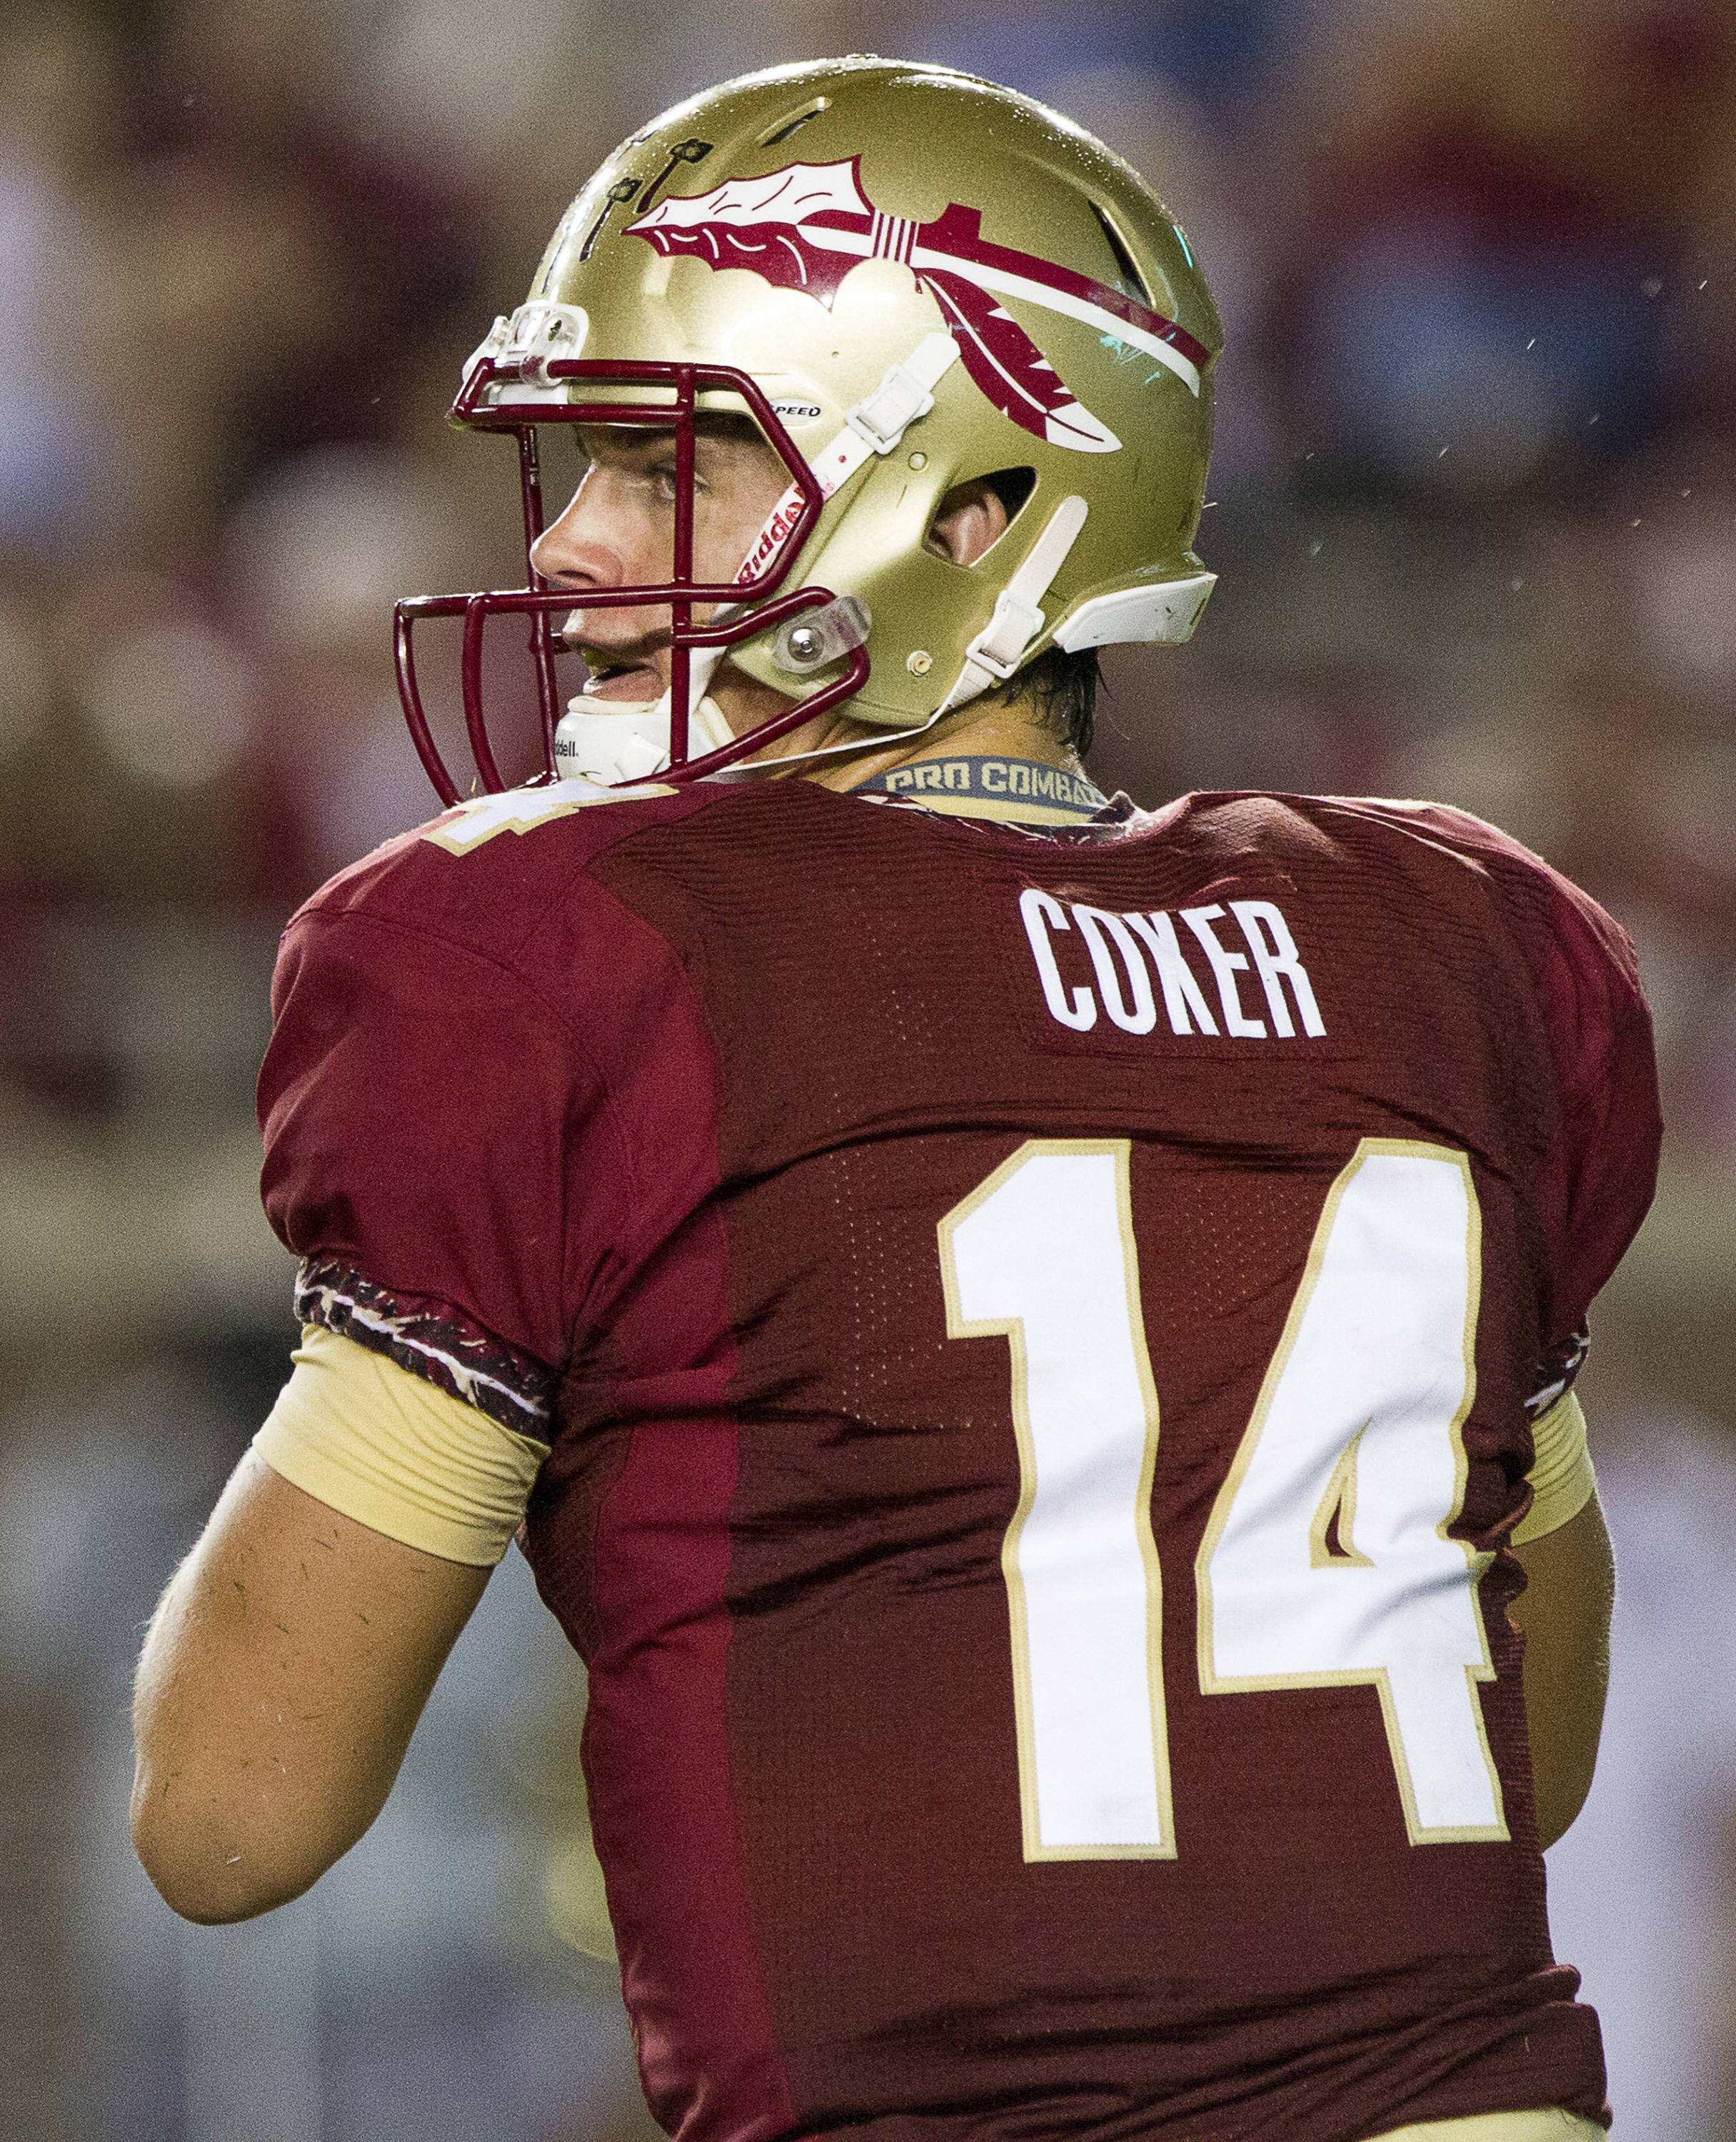 Jacob Coker (14) drops back to pass during FSU Football's 54-6 win over Bethune-Cookman on September 21, 2013 in Tallahassee, Fla